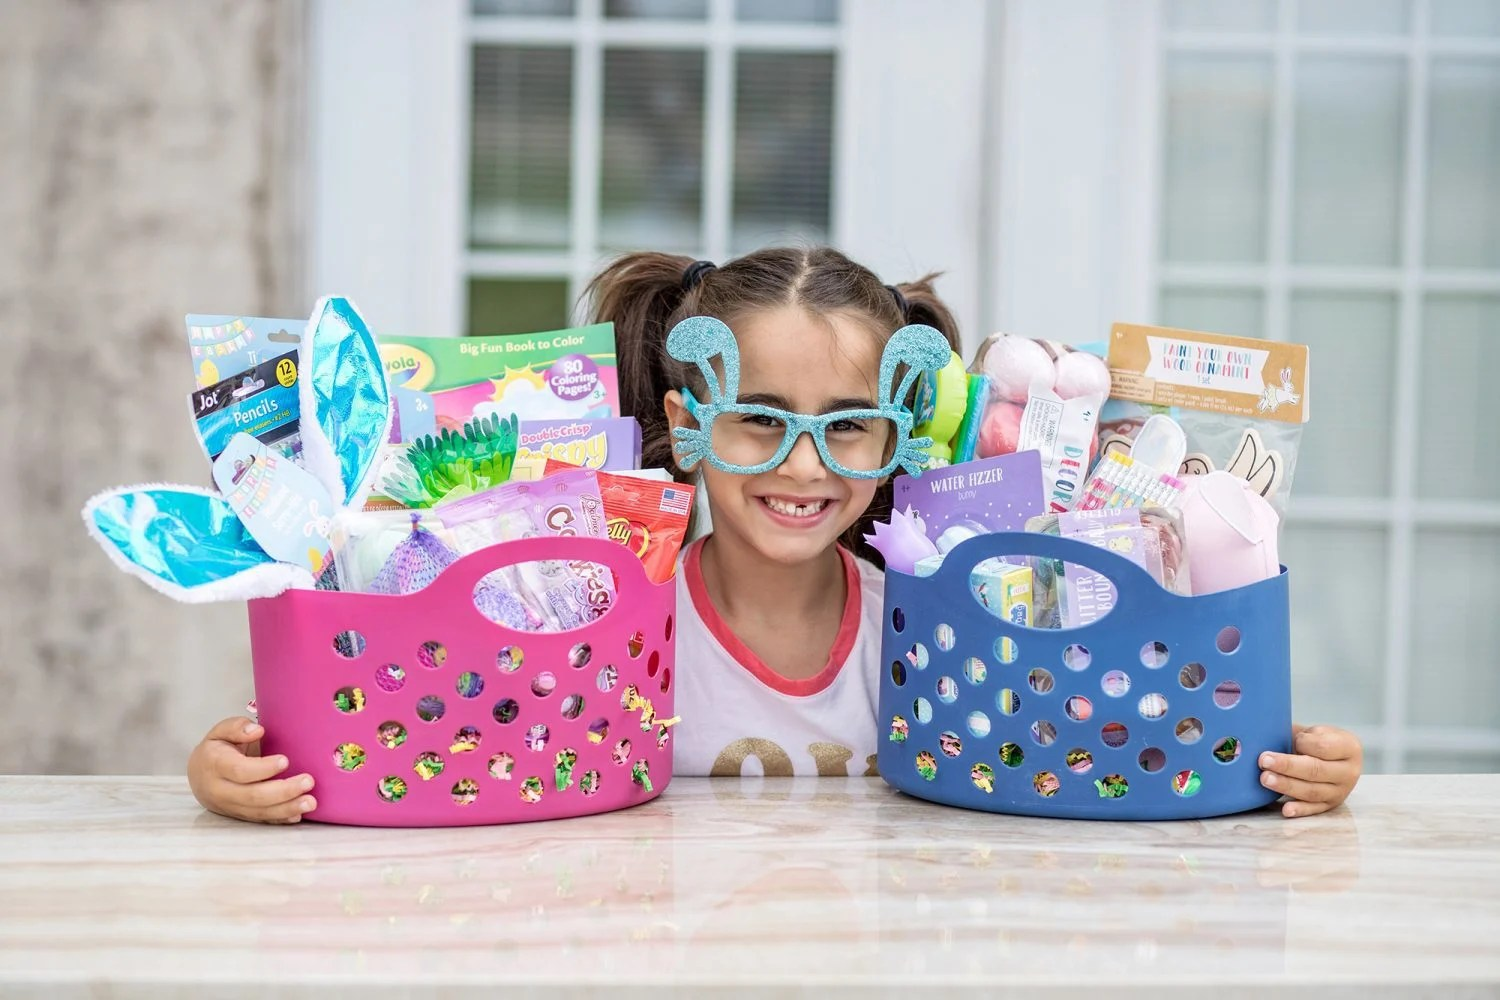 easter basket, budget, easter baskets on a budget, easter, easter baskets, target, kids, gift idea, diy, dollar store, target dollar spot, 2019, ideas for easter baskets, target dollar spot easter basket, gifts for kids, easter basket ideas, dollar tree easter basket